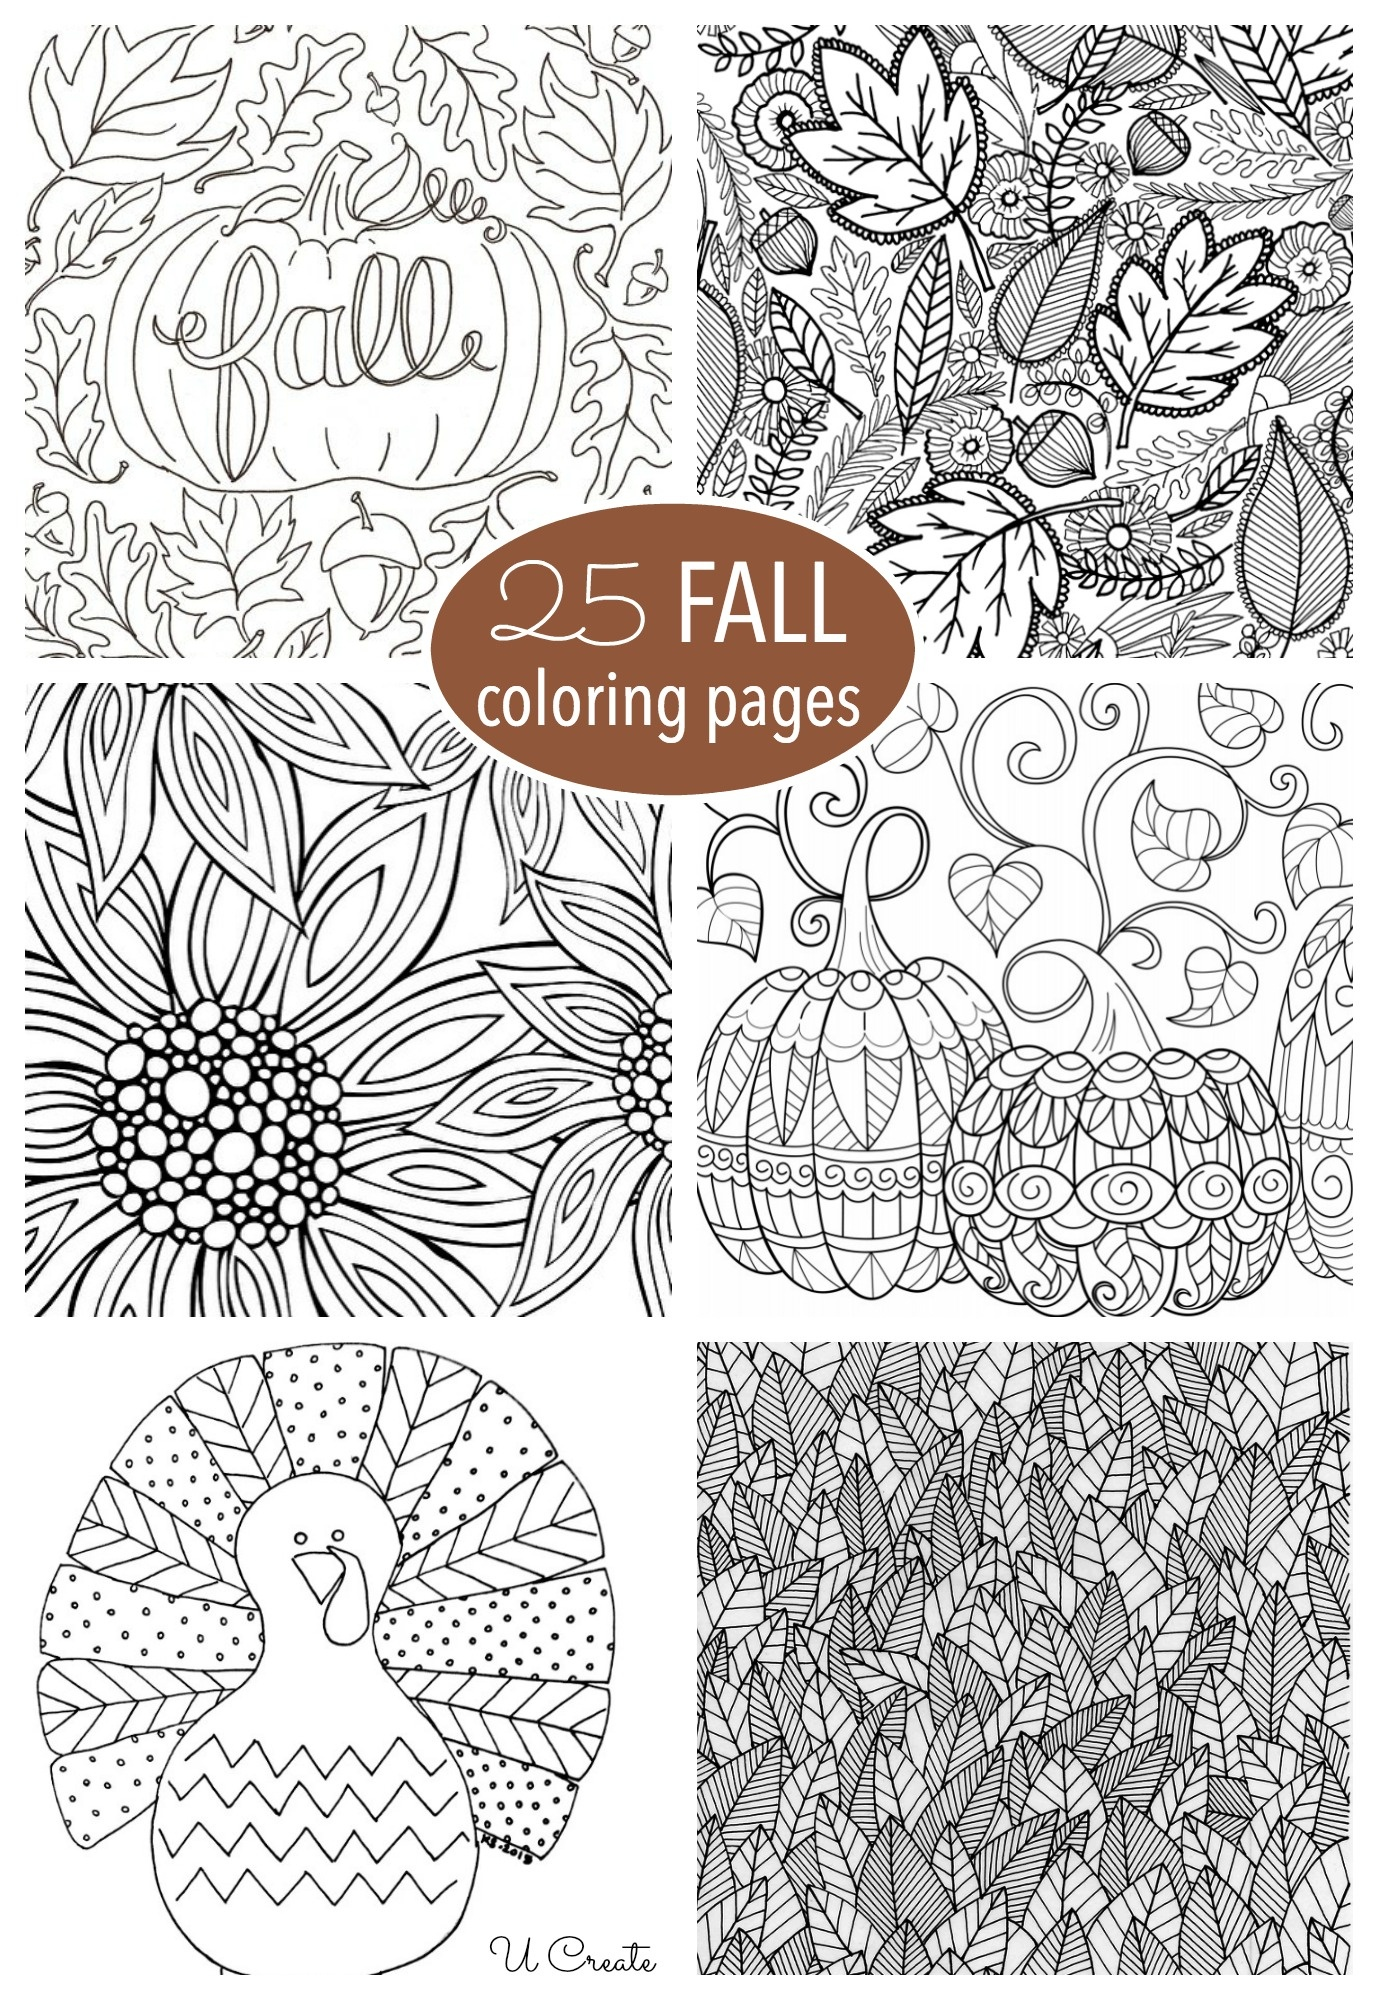 Free Fall Adult Coloring Pages - U Create - Free Printable Fall Coloring Pages For Adults